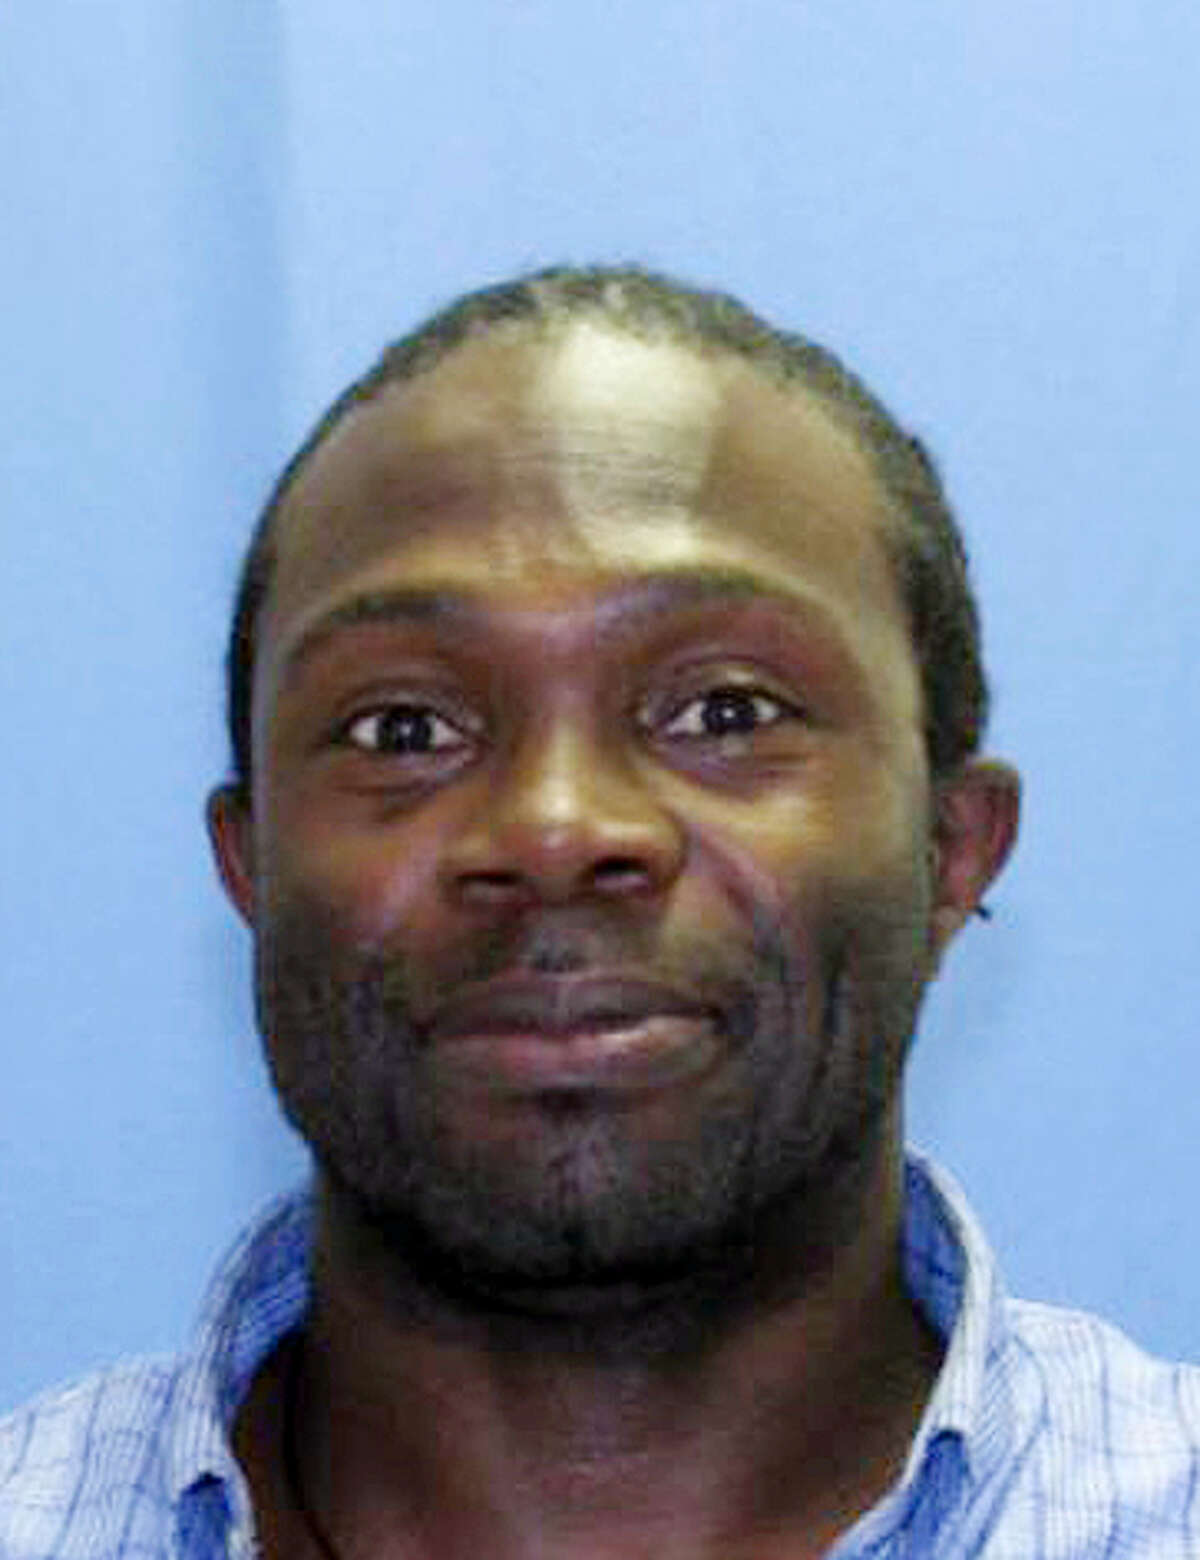 This Mississippi Department of Public Safety provided an undated, state driver's license photograph of Andrew McClinton, of Leland, Miss., who was arrested by the Greenville Police Department on Dec. 21, 2016 in Greenville , Miss., in connection with the Nov. 1, 2016 fire at Greenville's Hopewell Missionary Baptist Church.